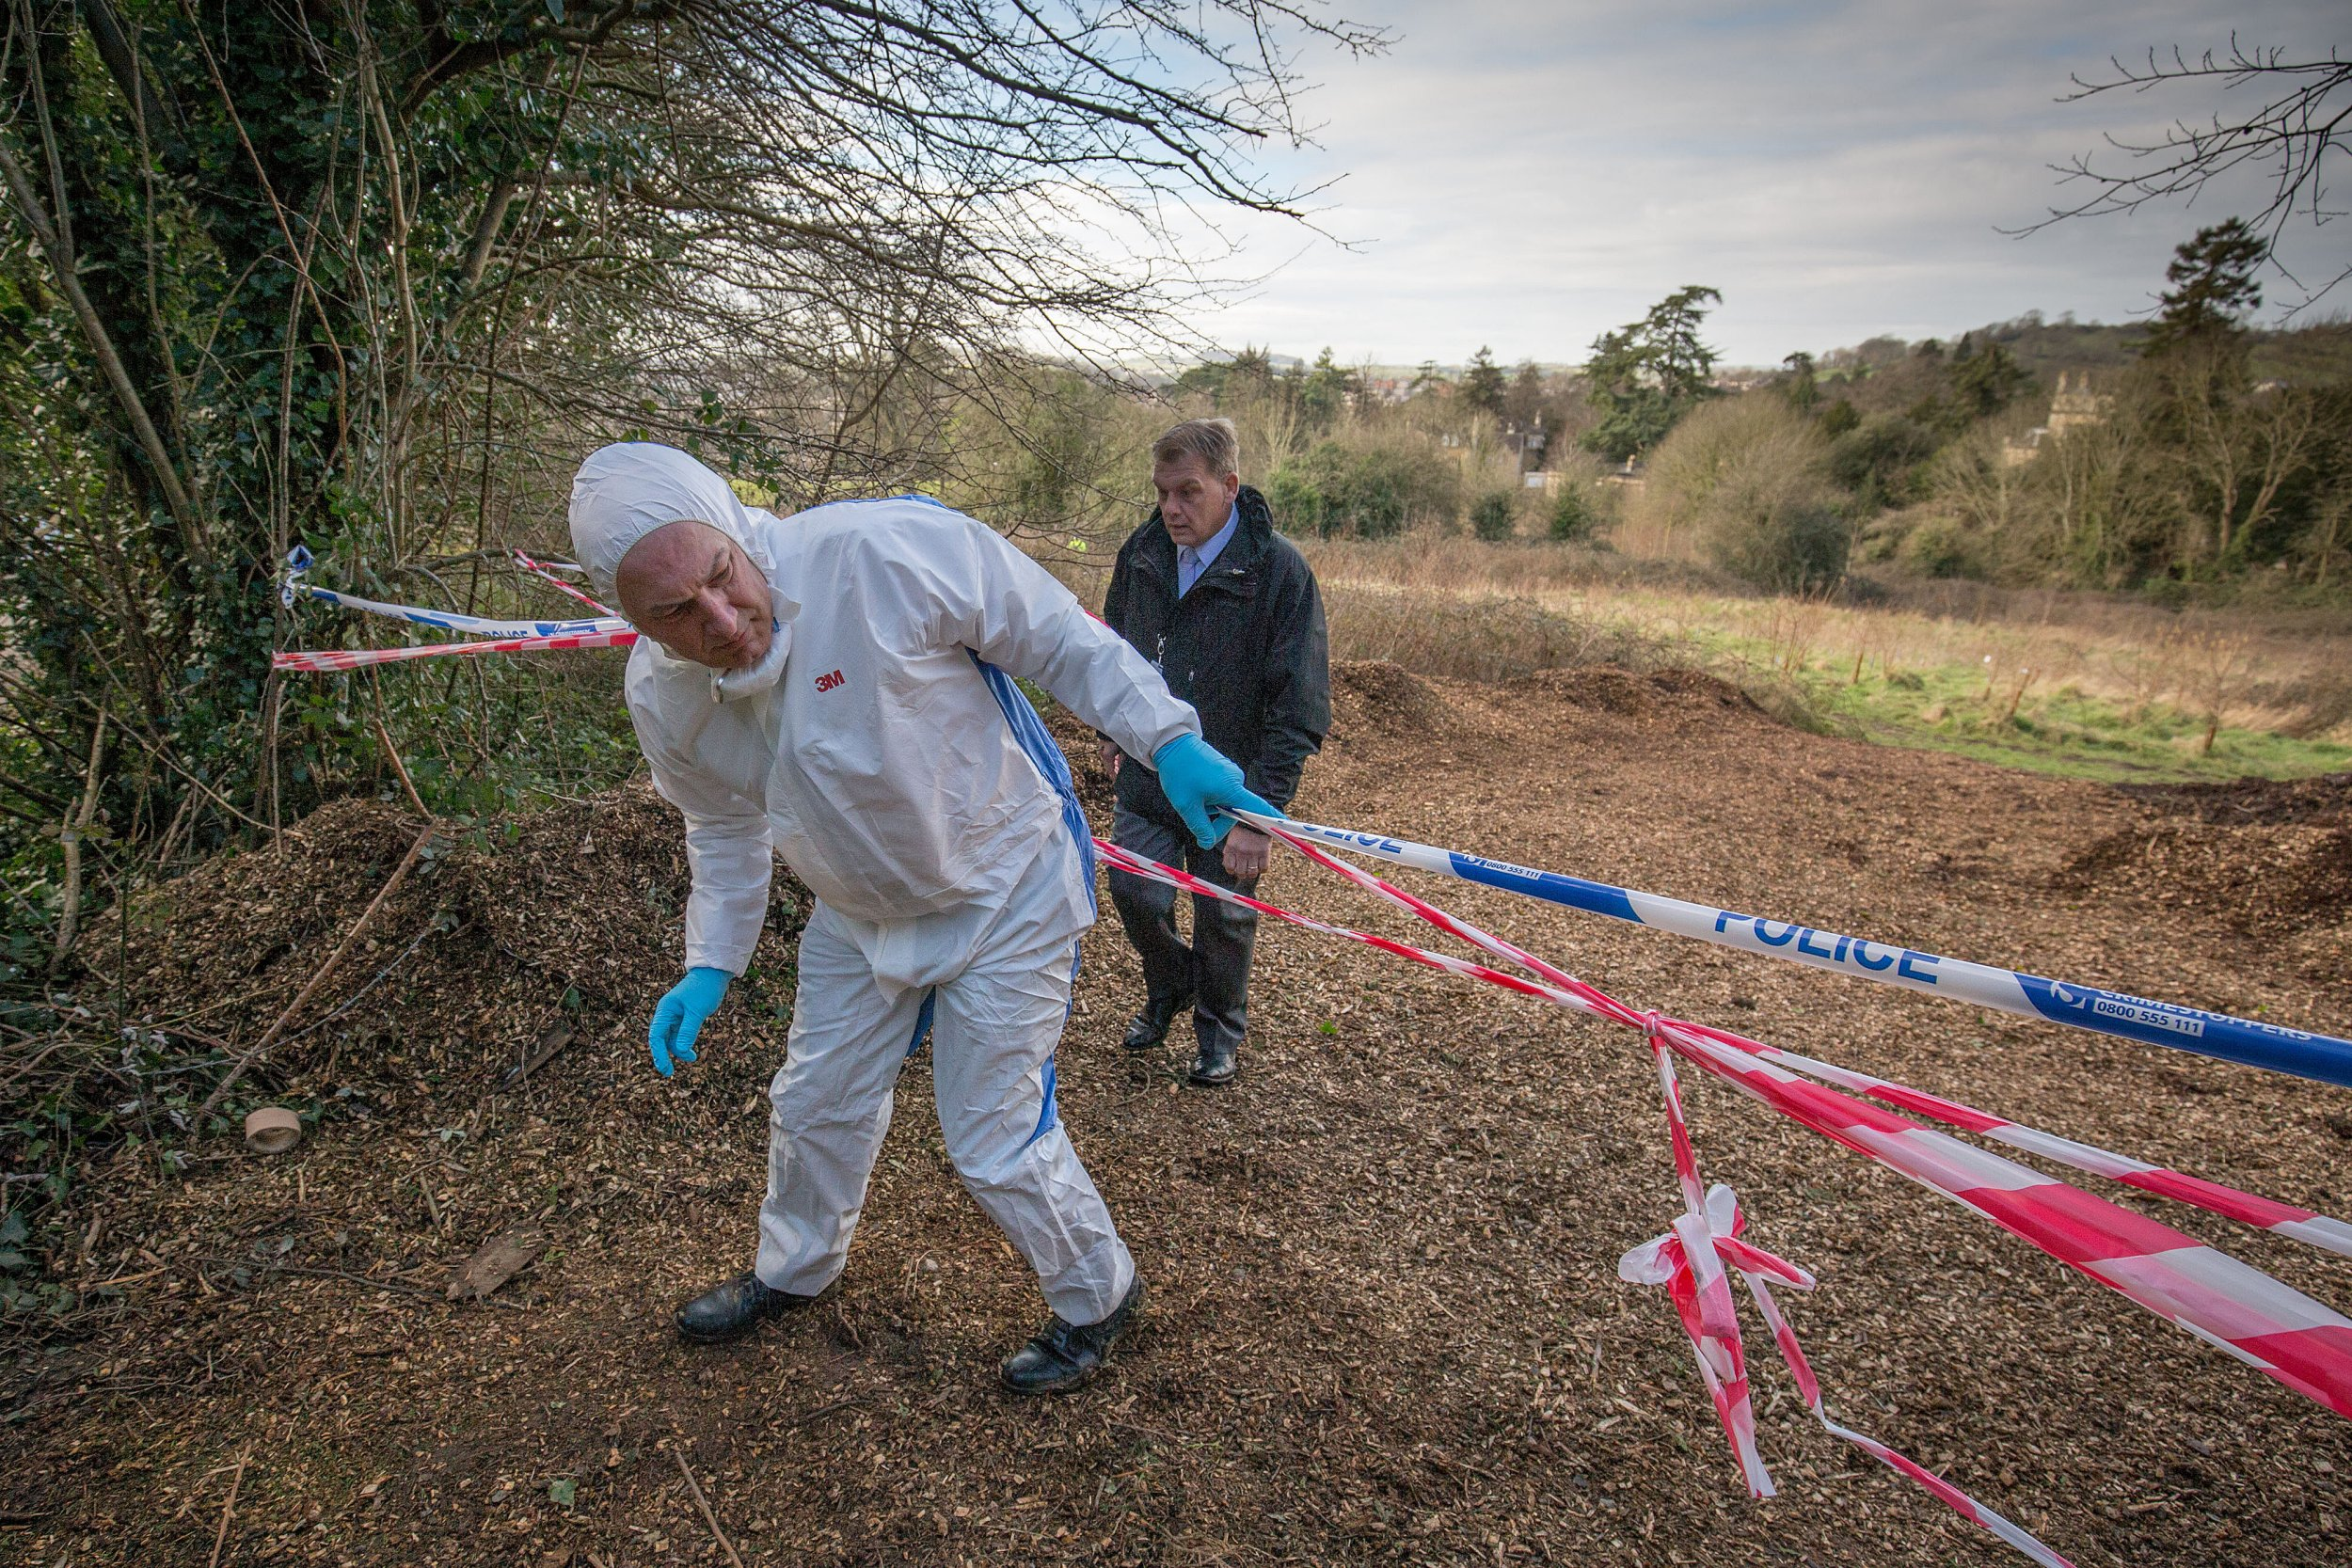 Police on the scene at Weston Park East in Bath, where a severed human foot was found this morning. February 19 2016.    See SWNS story SWFOOT: Police are investigating the mysterious discovery of a severed human FOOT in a city park yesterday (Fri). The gruesome find was made by a dog walker at Weston Park East in Bath, Somerset, around a mile from the city centre. It appeared to be a right foot and had been severed a couple of inches above the ankle. Dog walker Simon Clarke made the discovery while walking his dog Ollie with his partner Nicky Jeffries at around 8am on Friday morning.